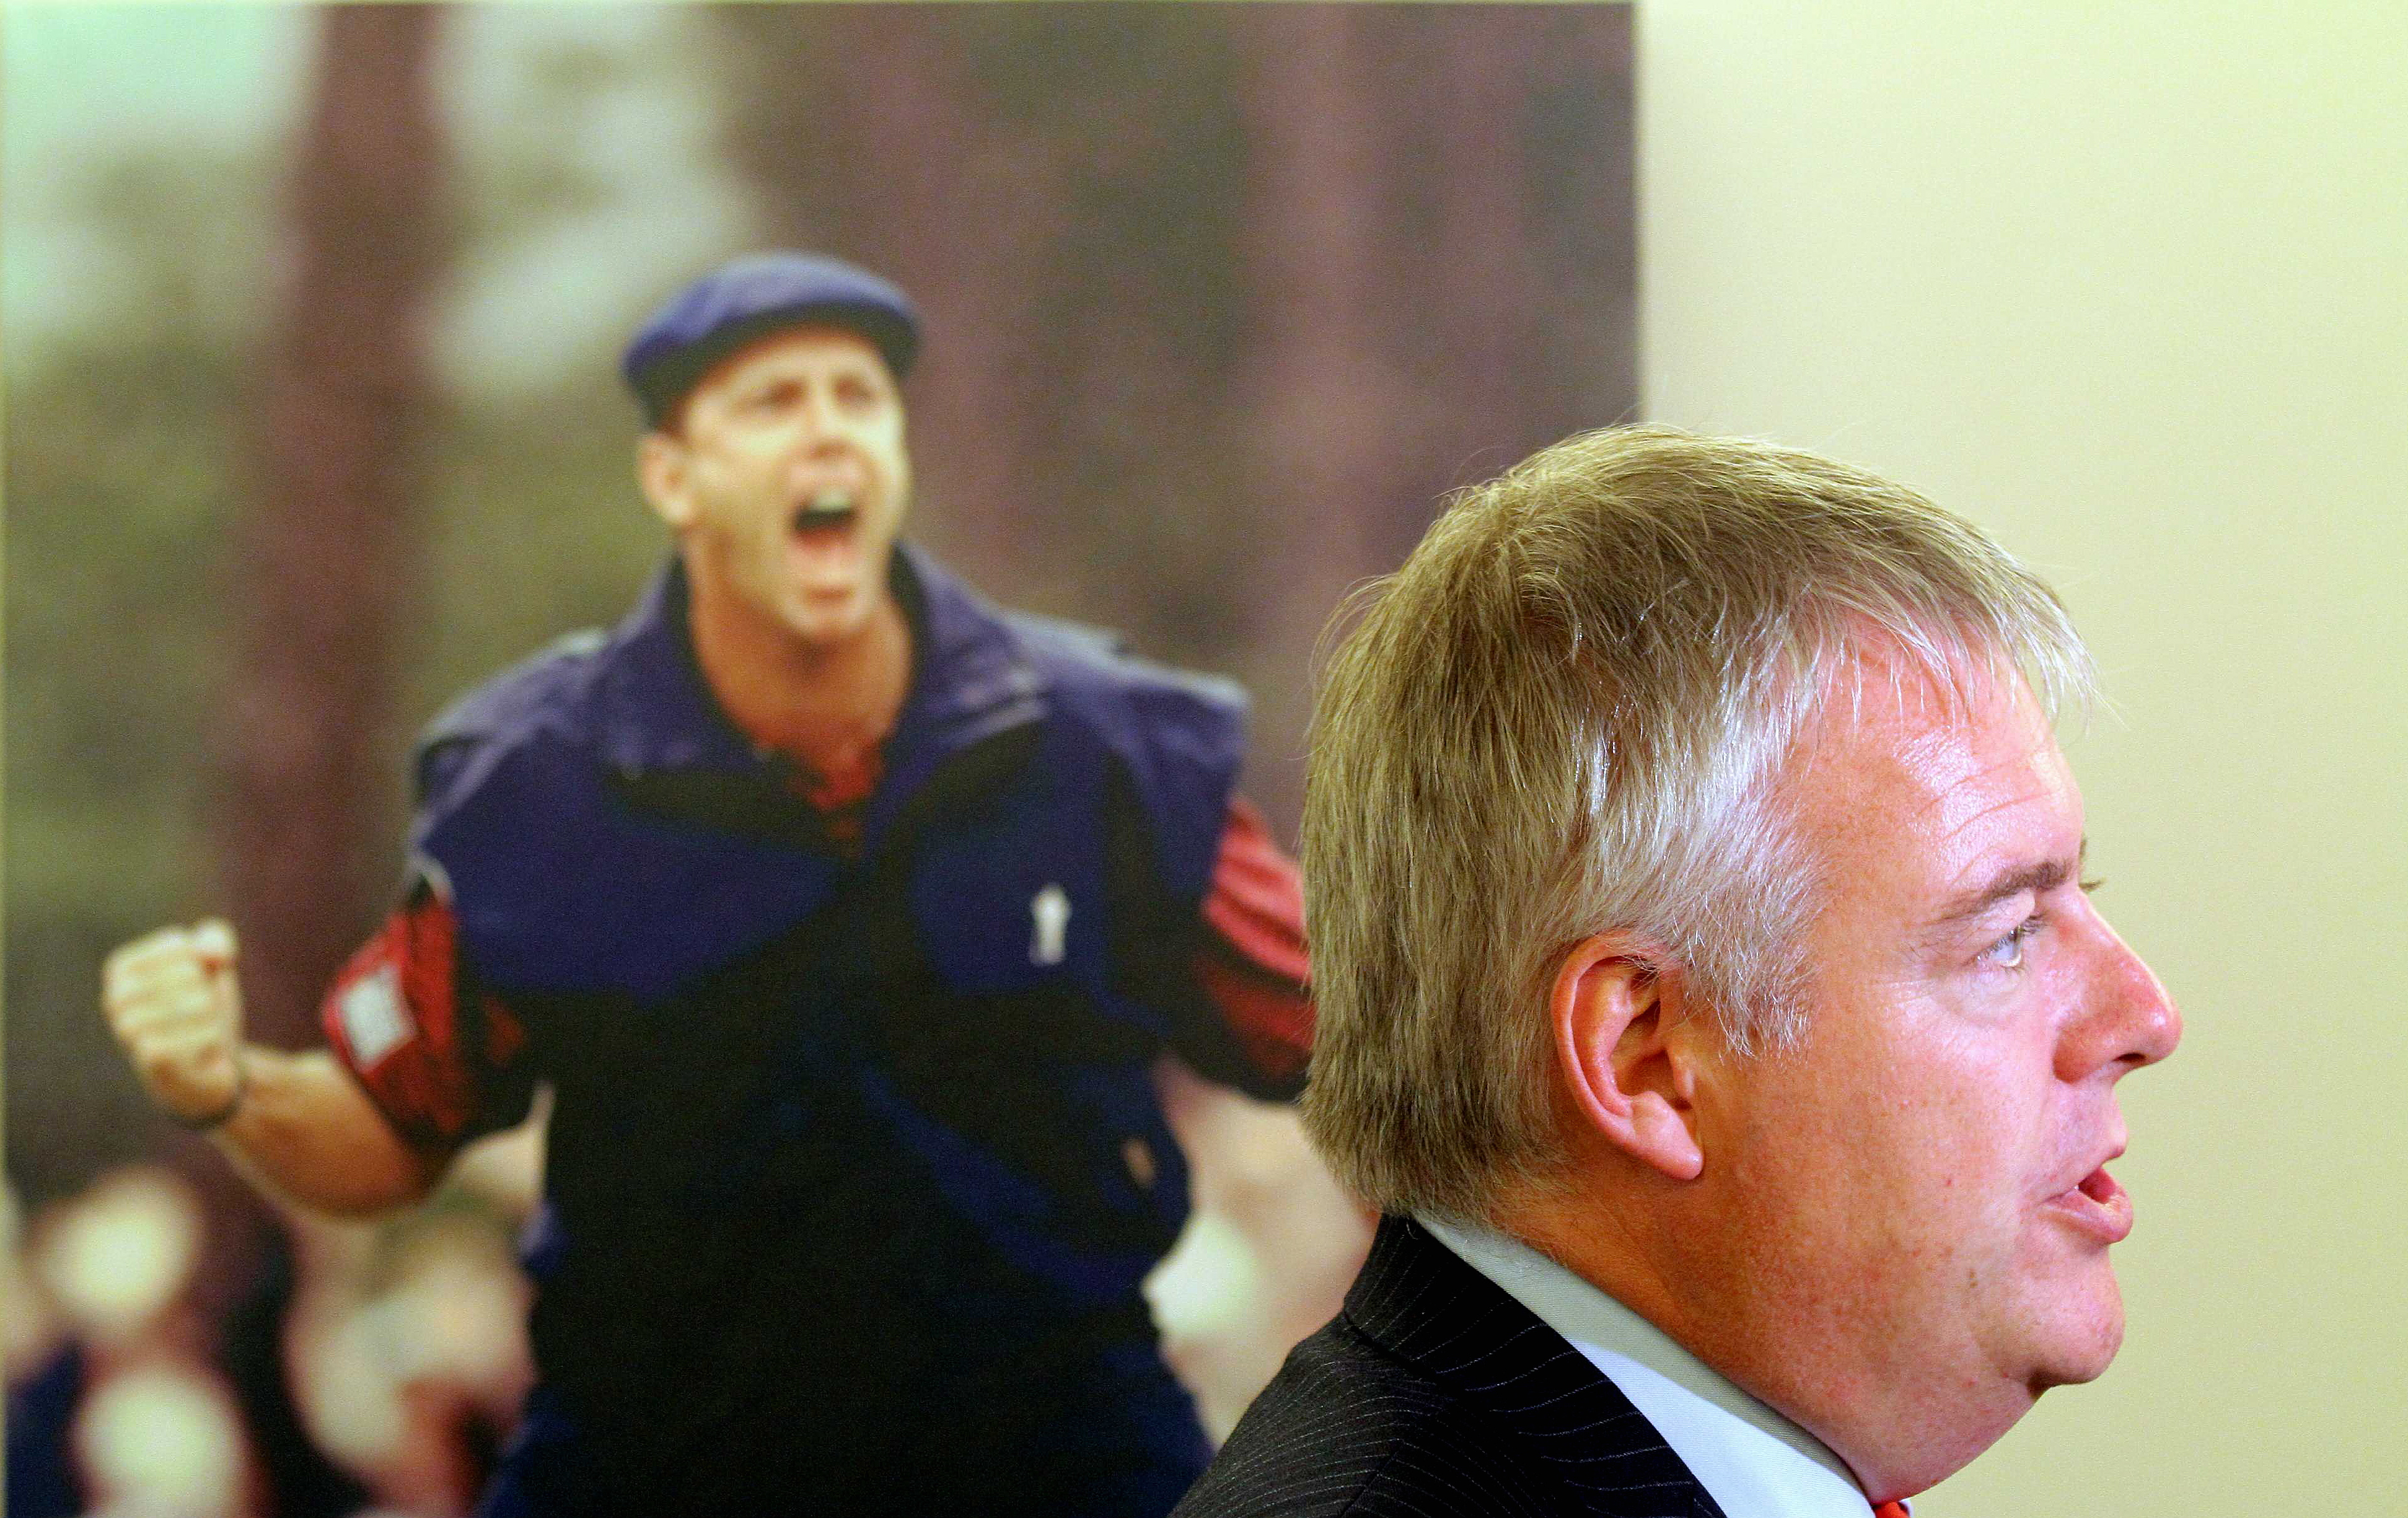 WORDS STEPHEN MOSS FOR G2 Pictured: Wales First Minister Carwyn Jones next to a picture of american golfer Payne Stewart celebrating his win on the last green of the 1999 US Open in North Carolina. Tuesday 14 September 2010 Re: The effect that the Ryder Cup 2010 which will be held at the caltic Manor resort, will have to nearby areas such as Ringland in Gwent, south Wales.